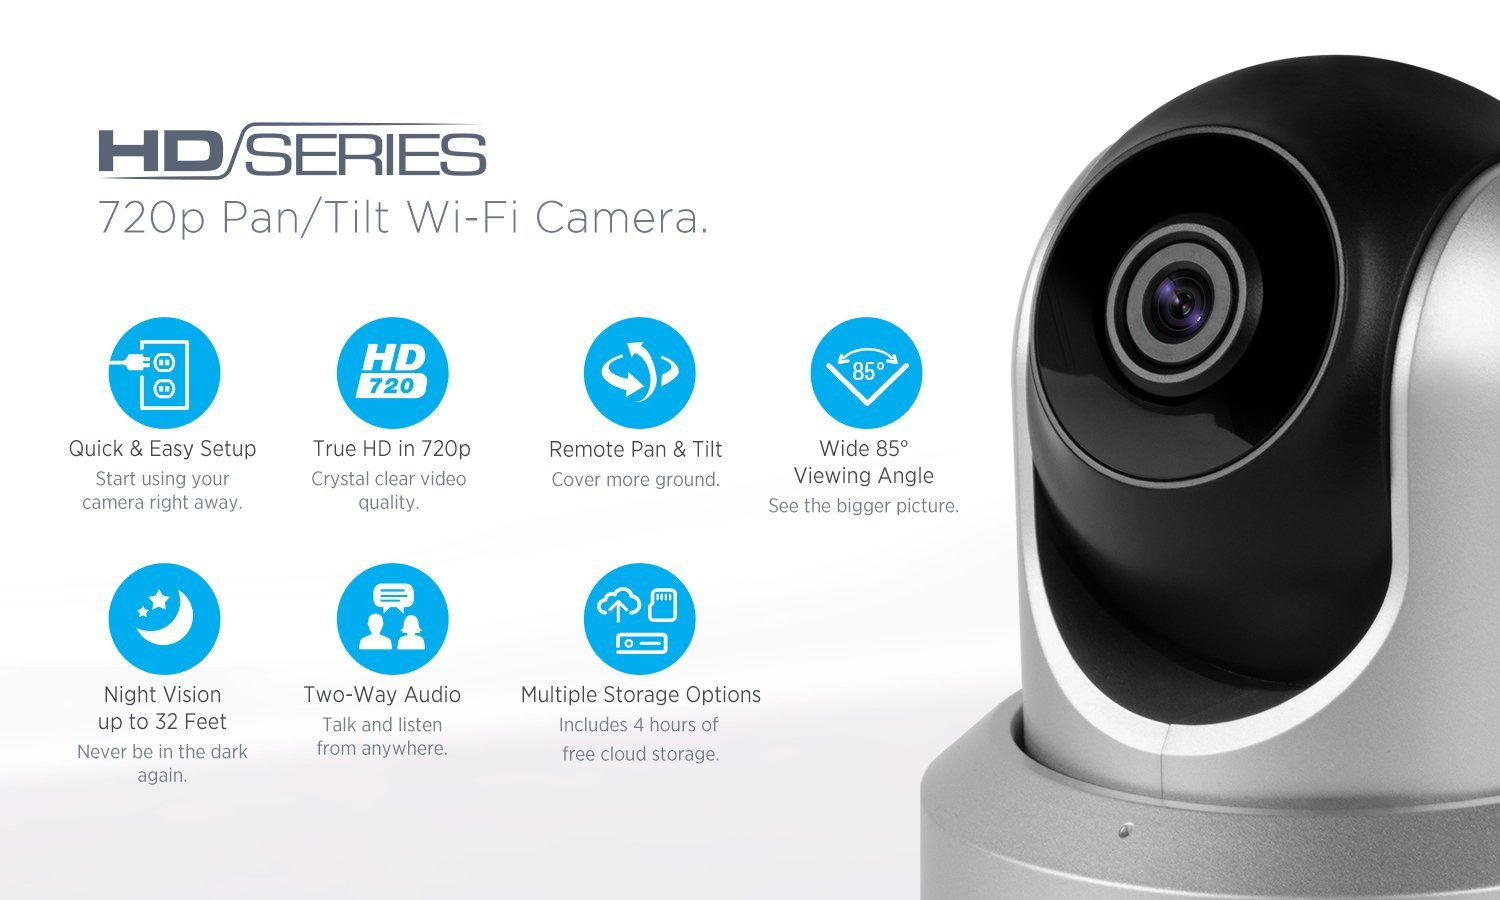 Amazon.com : Amcrest HDSeries 720P WiFi Wireless IP Security Surveillance Camera System IPM-721S (Silver) : Camera & Photo